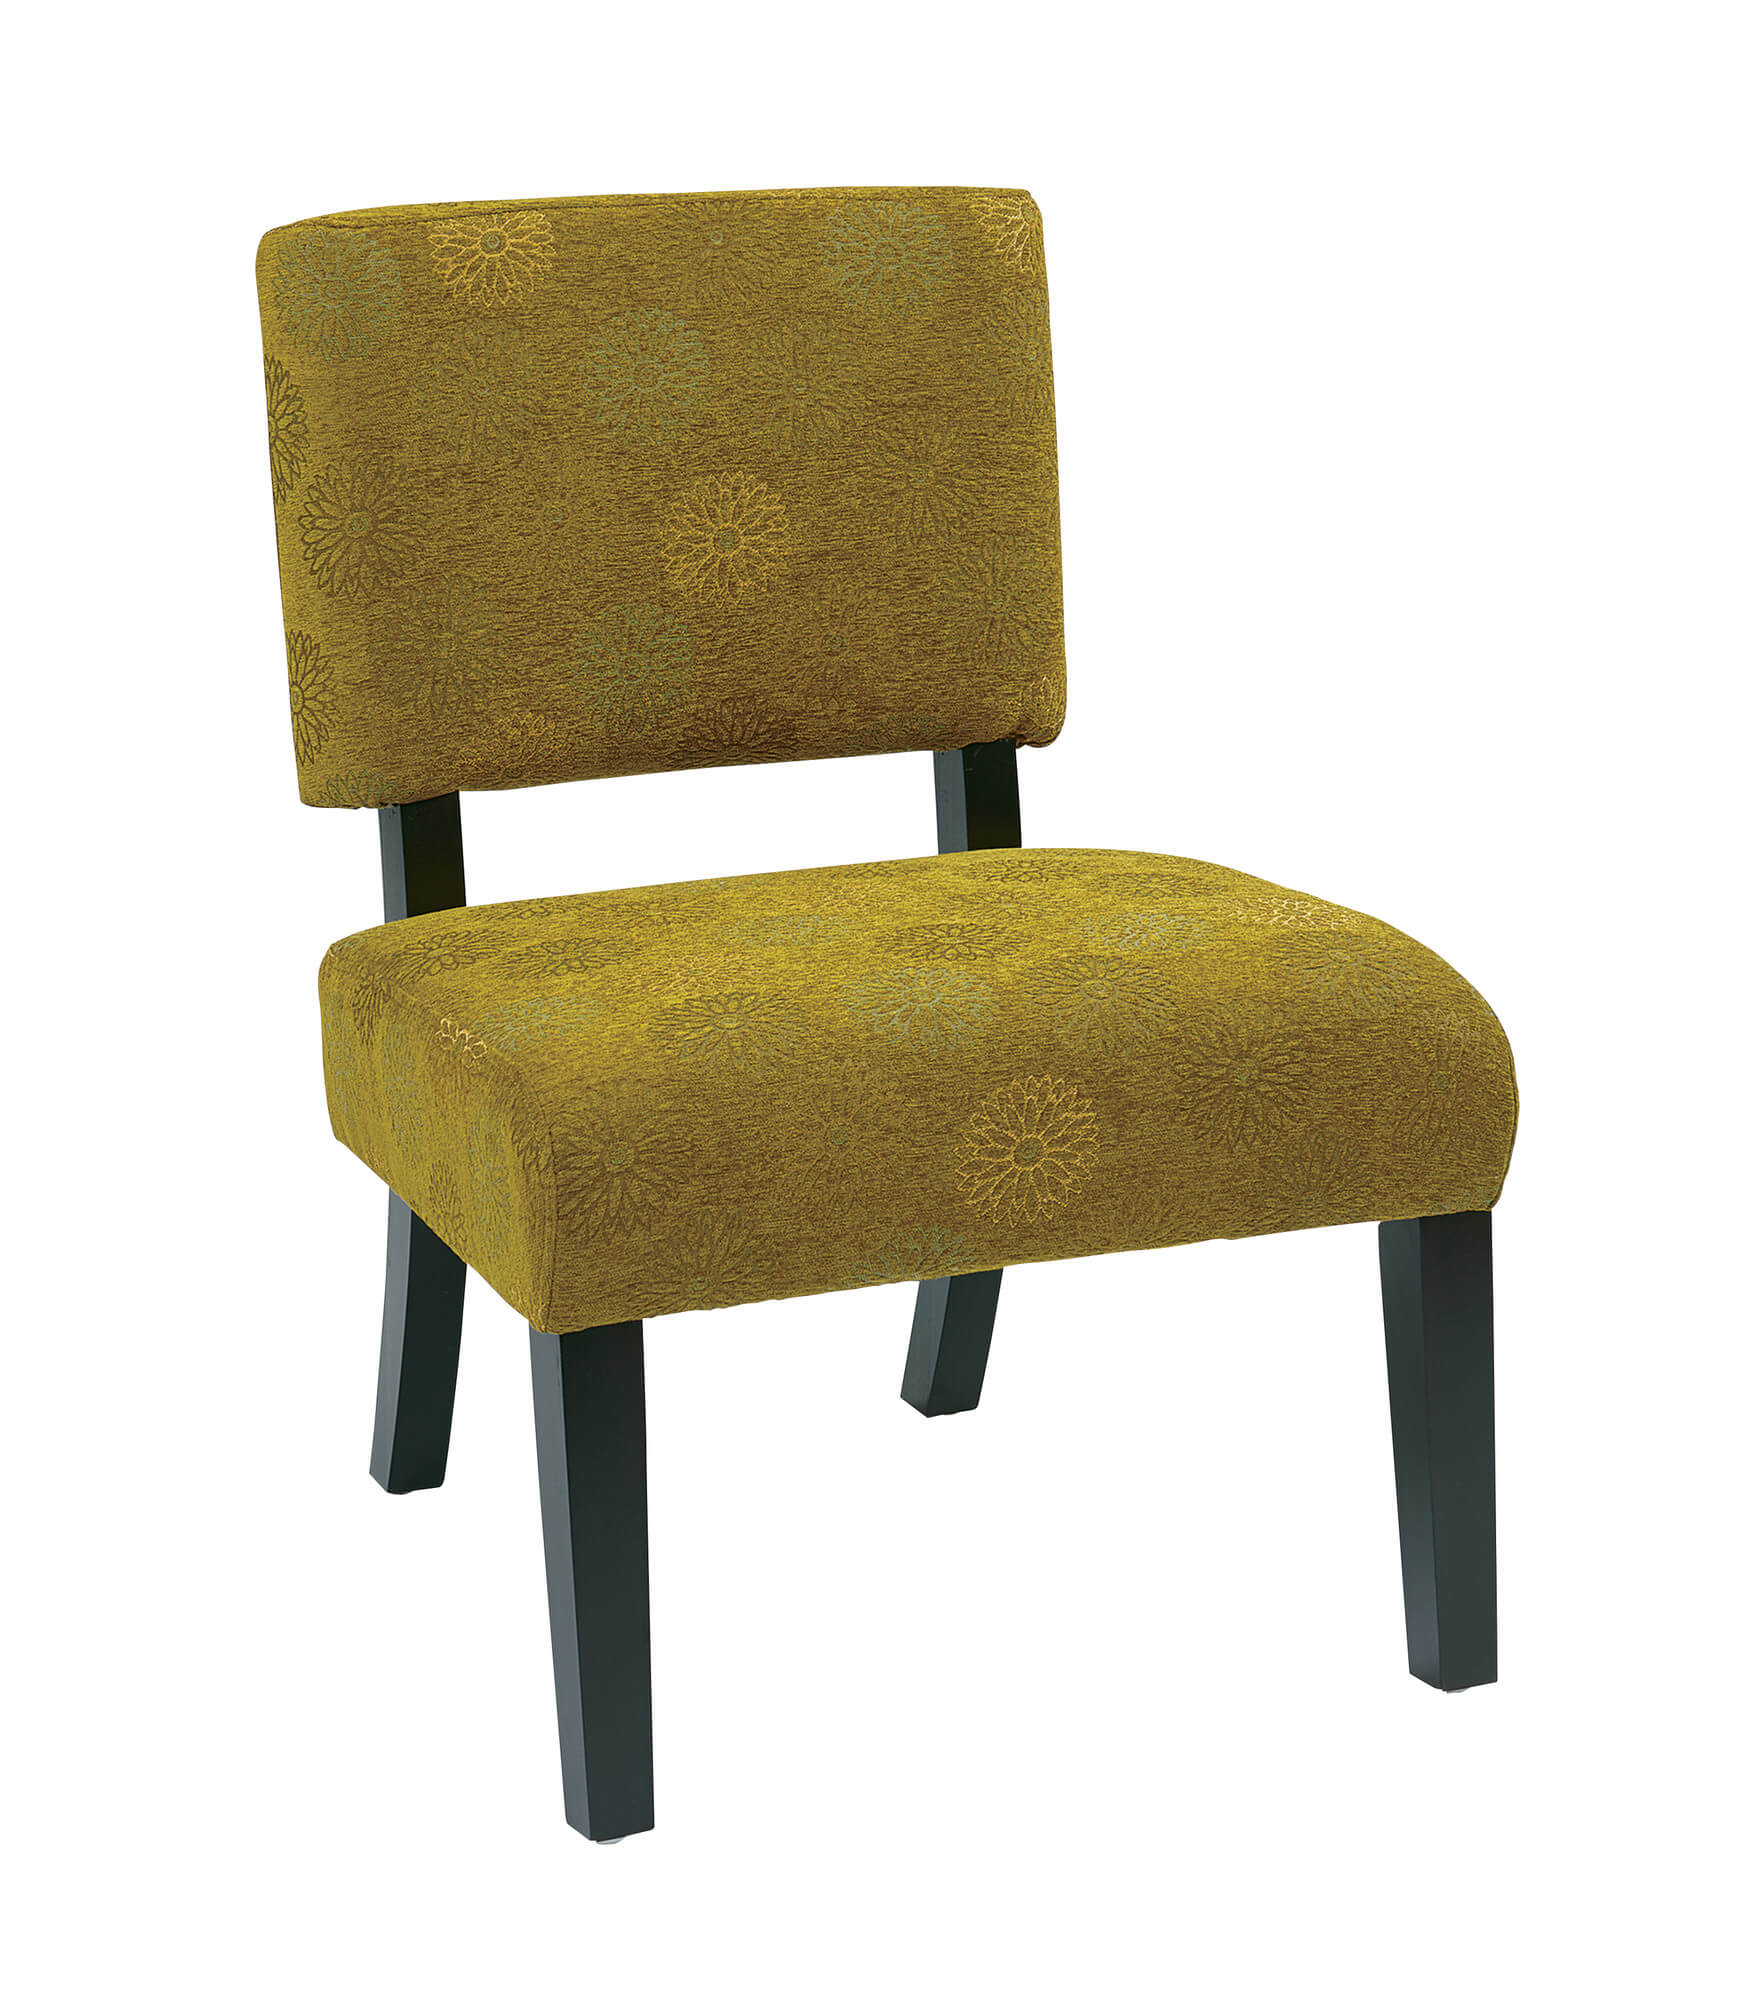 Here's a small accent chair priced just under $100 with a yellow-green fabric that works very well in an earth-tone dominant room